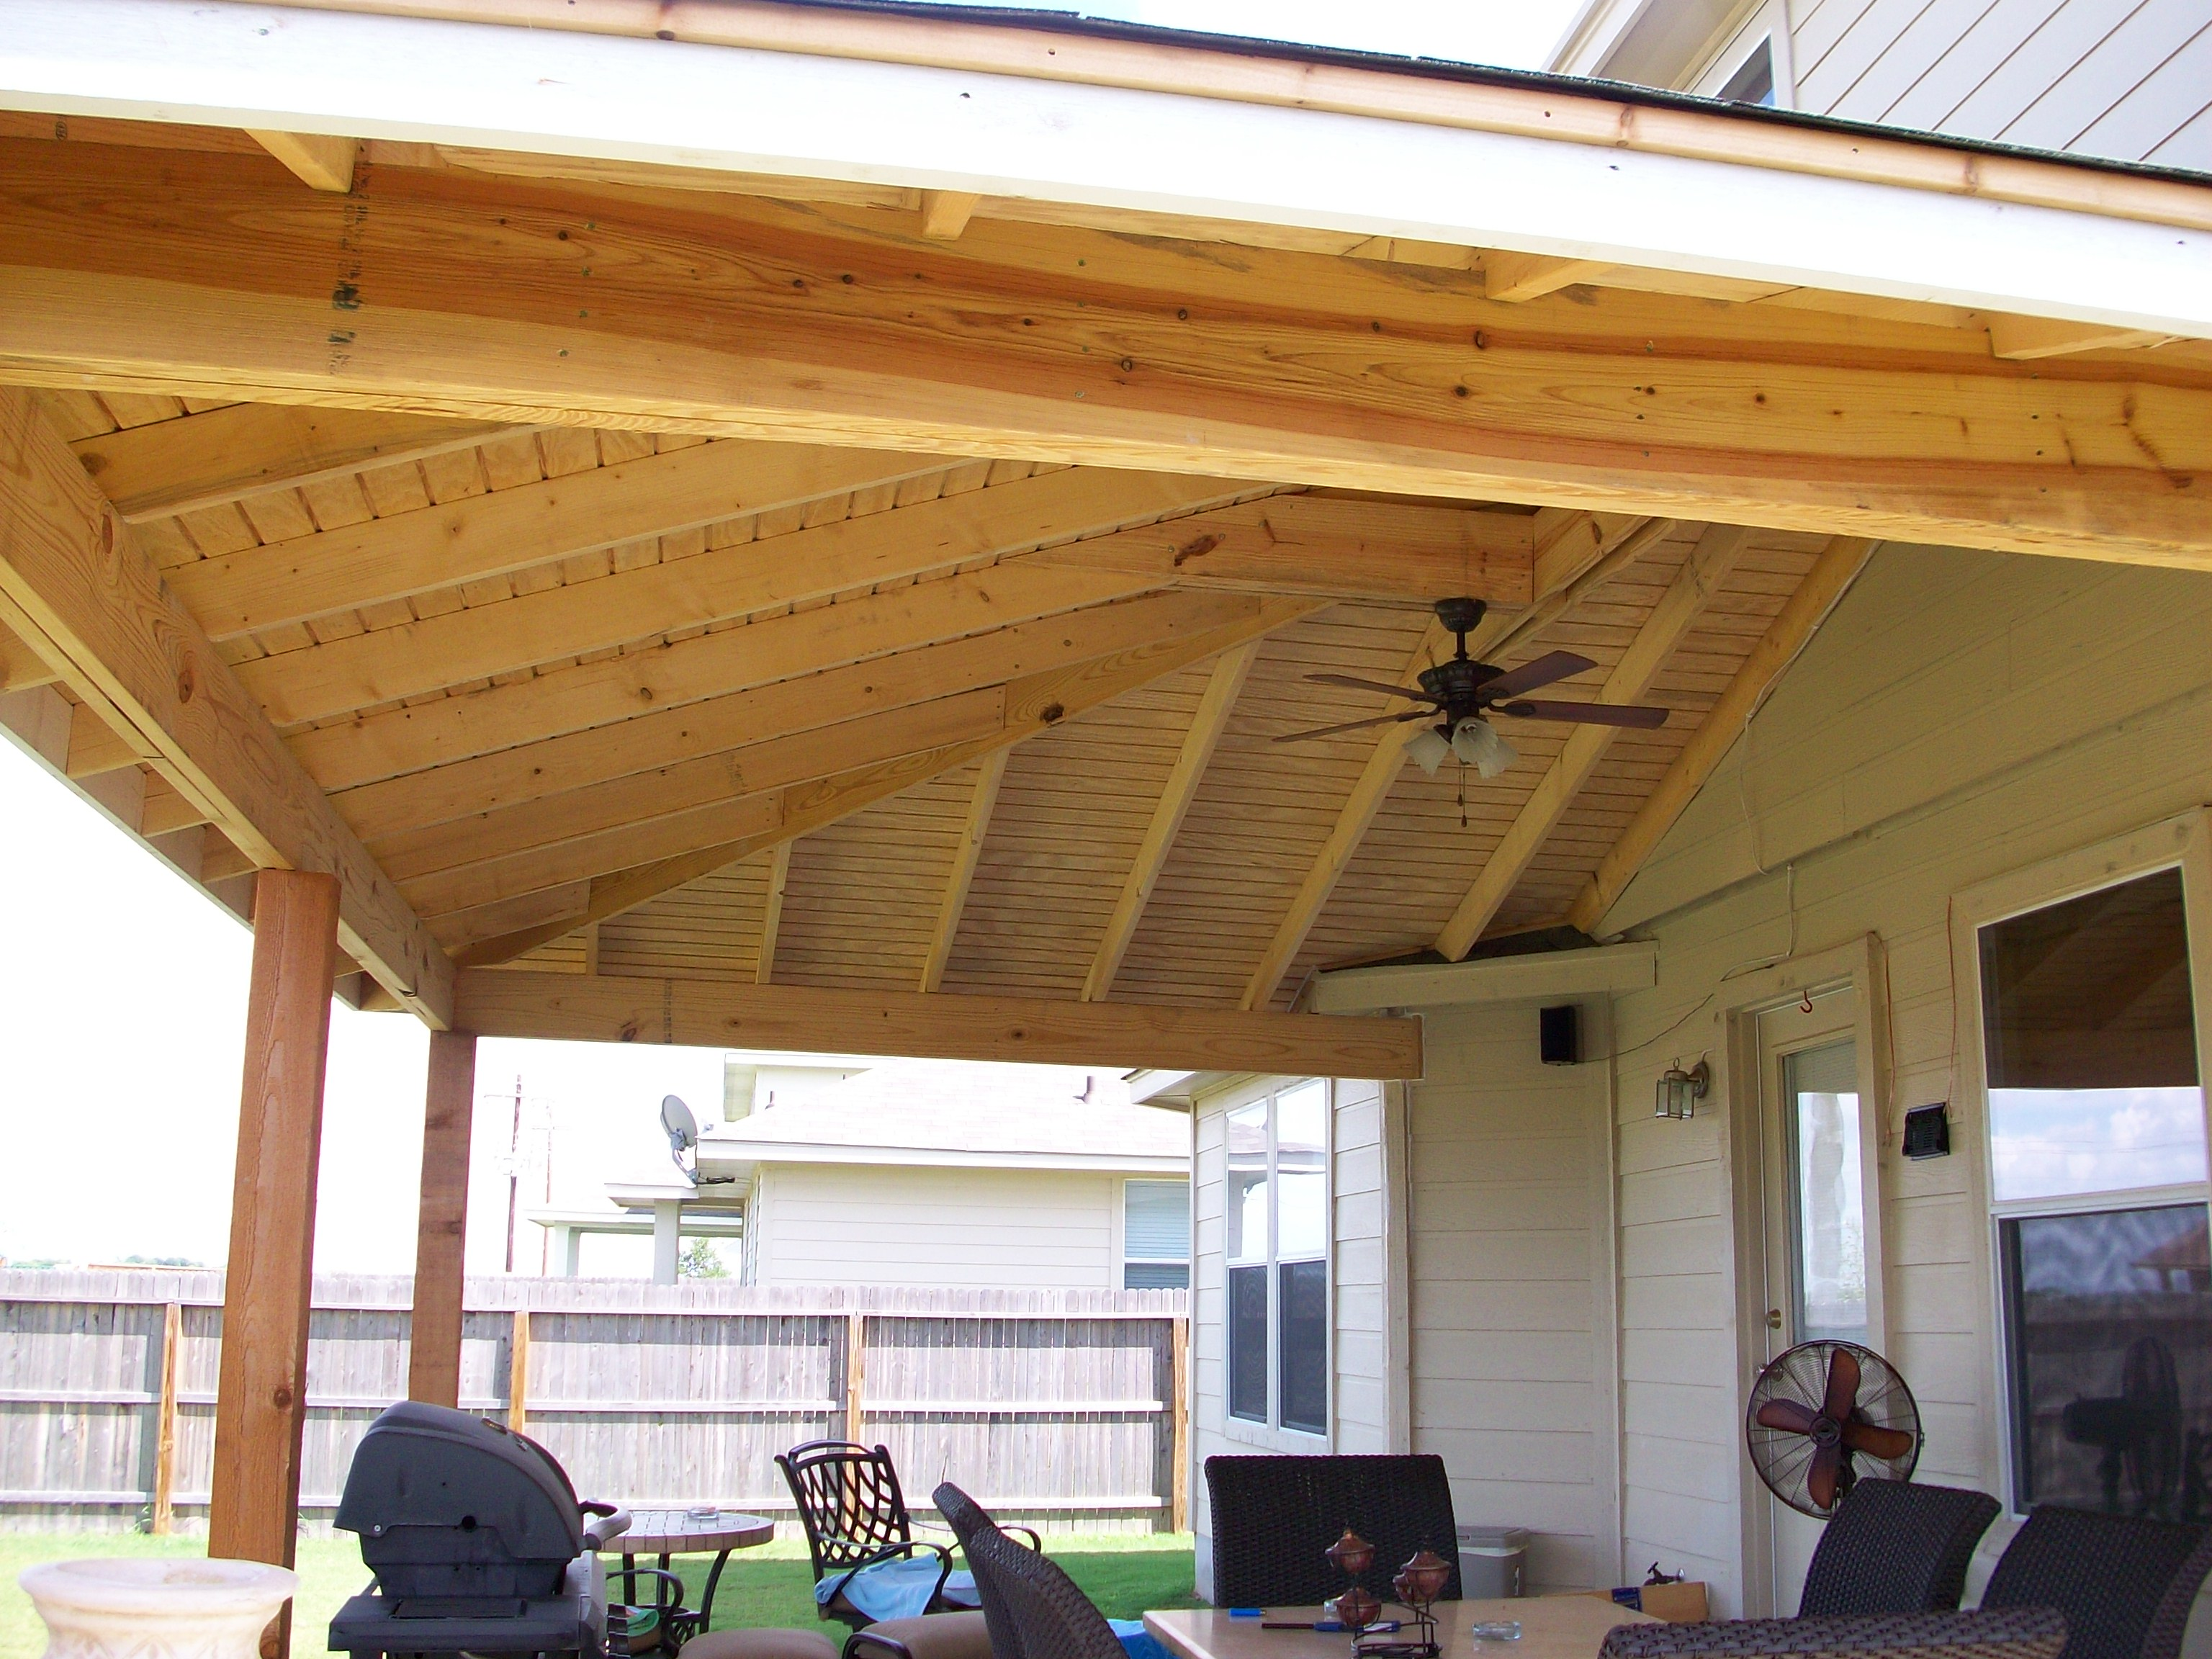 Wooden Patio Covers Design - HomesFeed on Timber Patio Designs id=43087